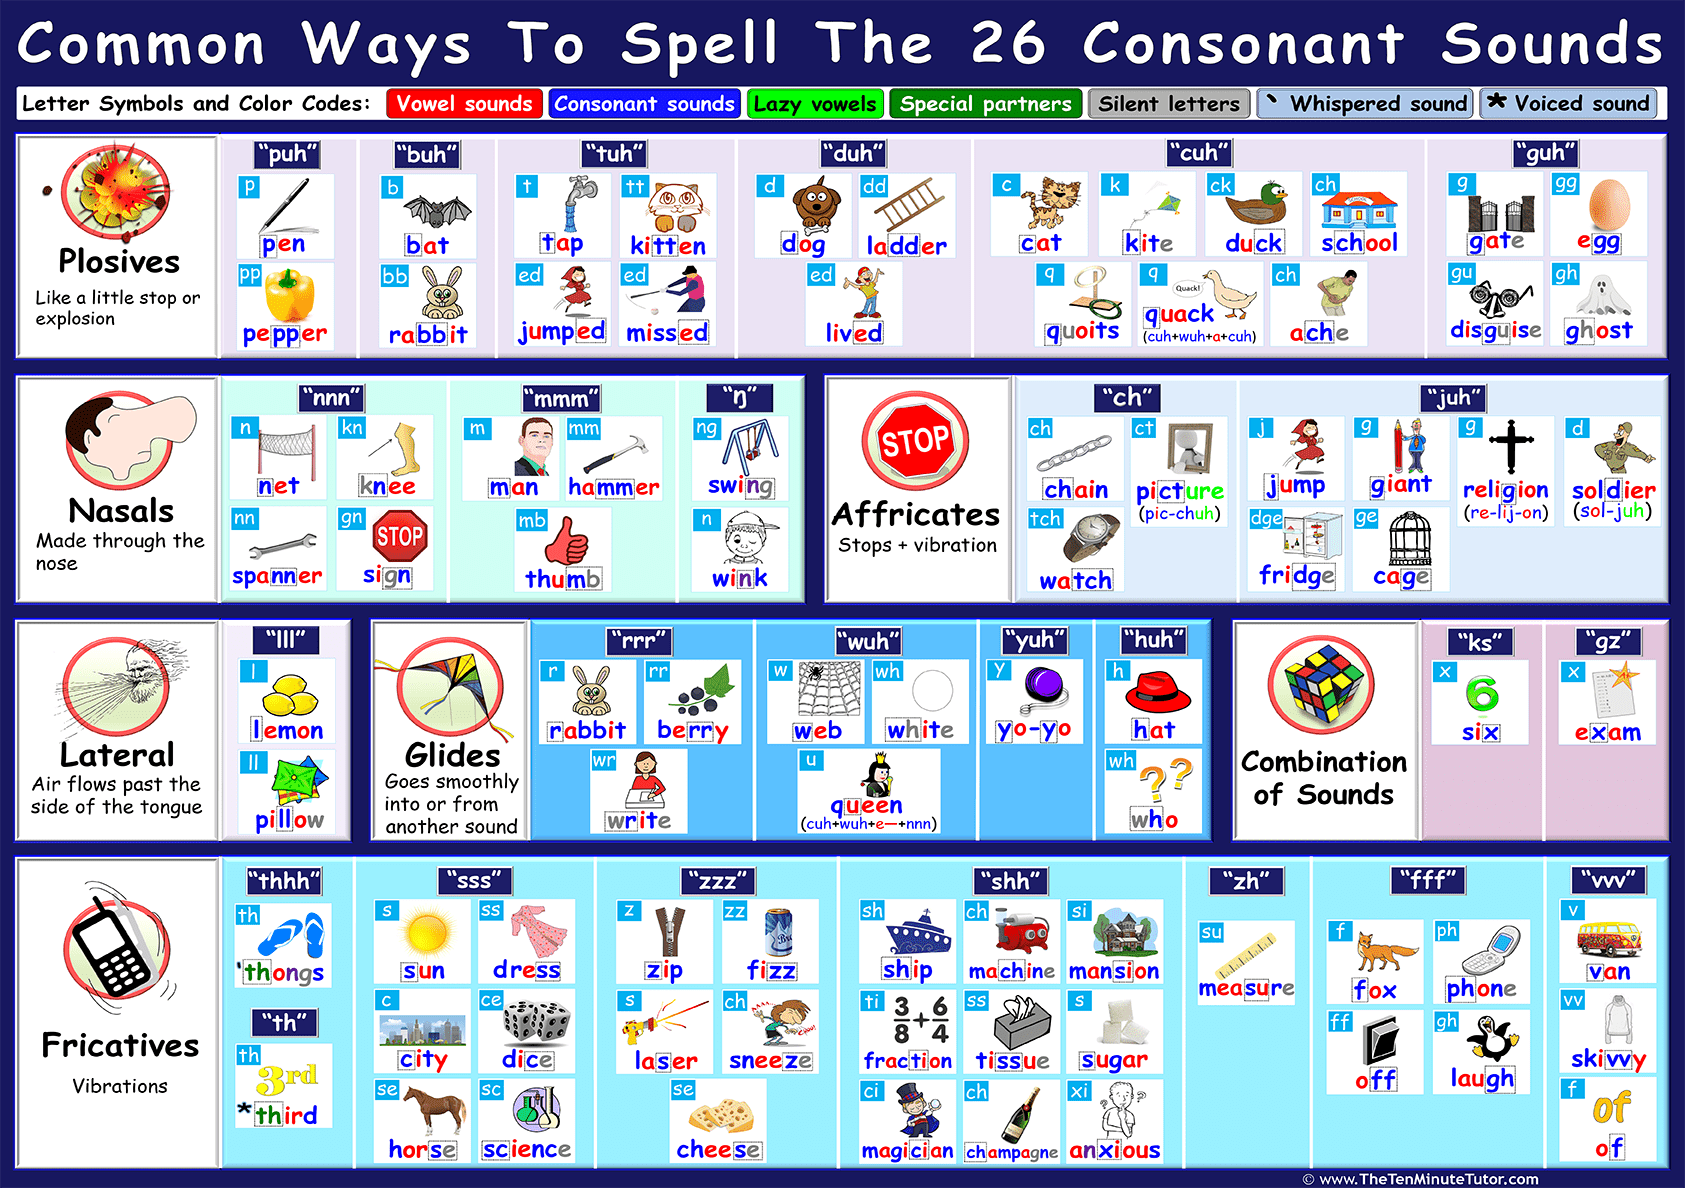 Common Ways To Spell The 26 Consonant Sounds